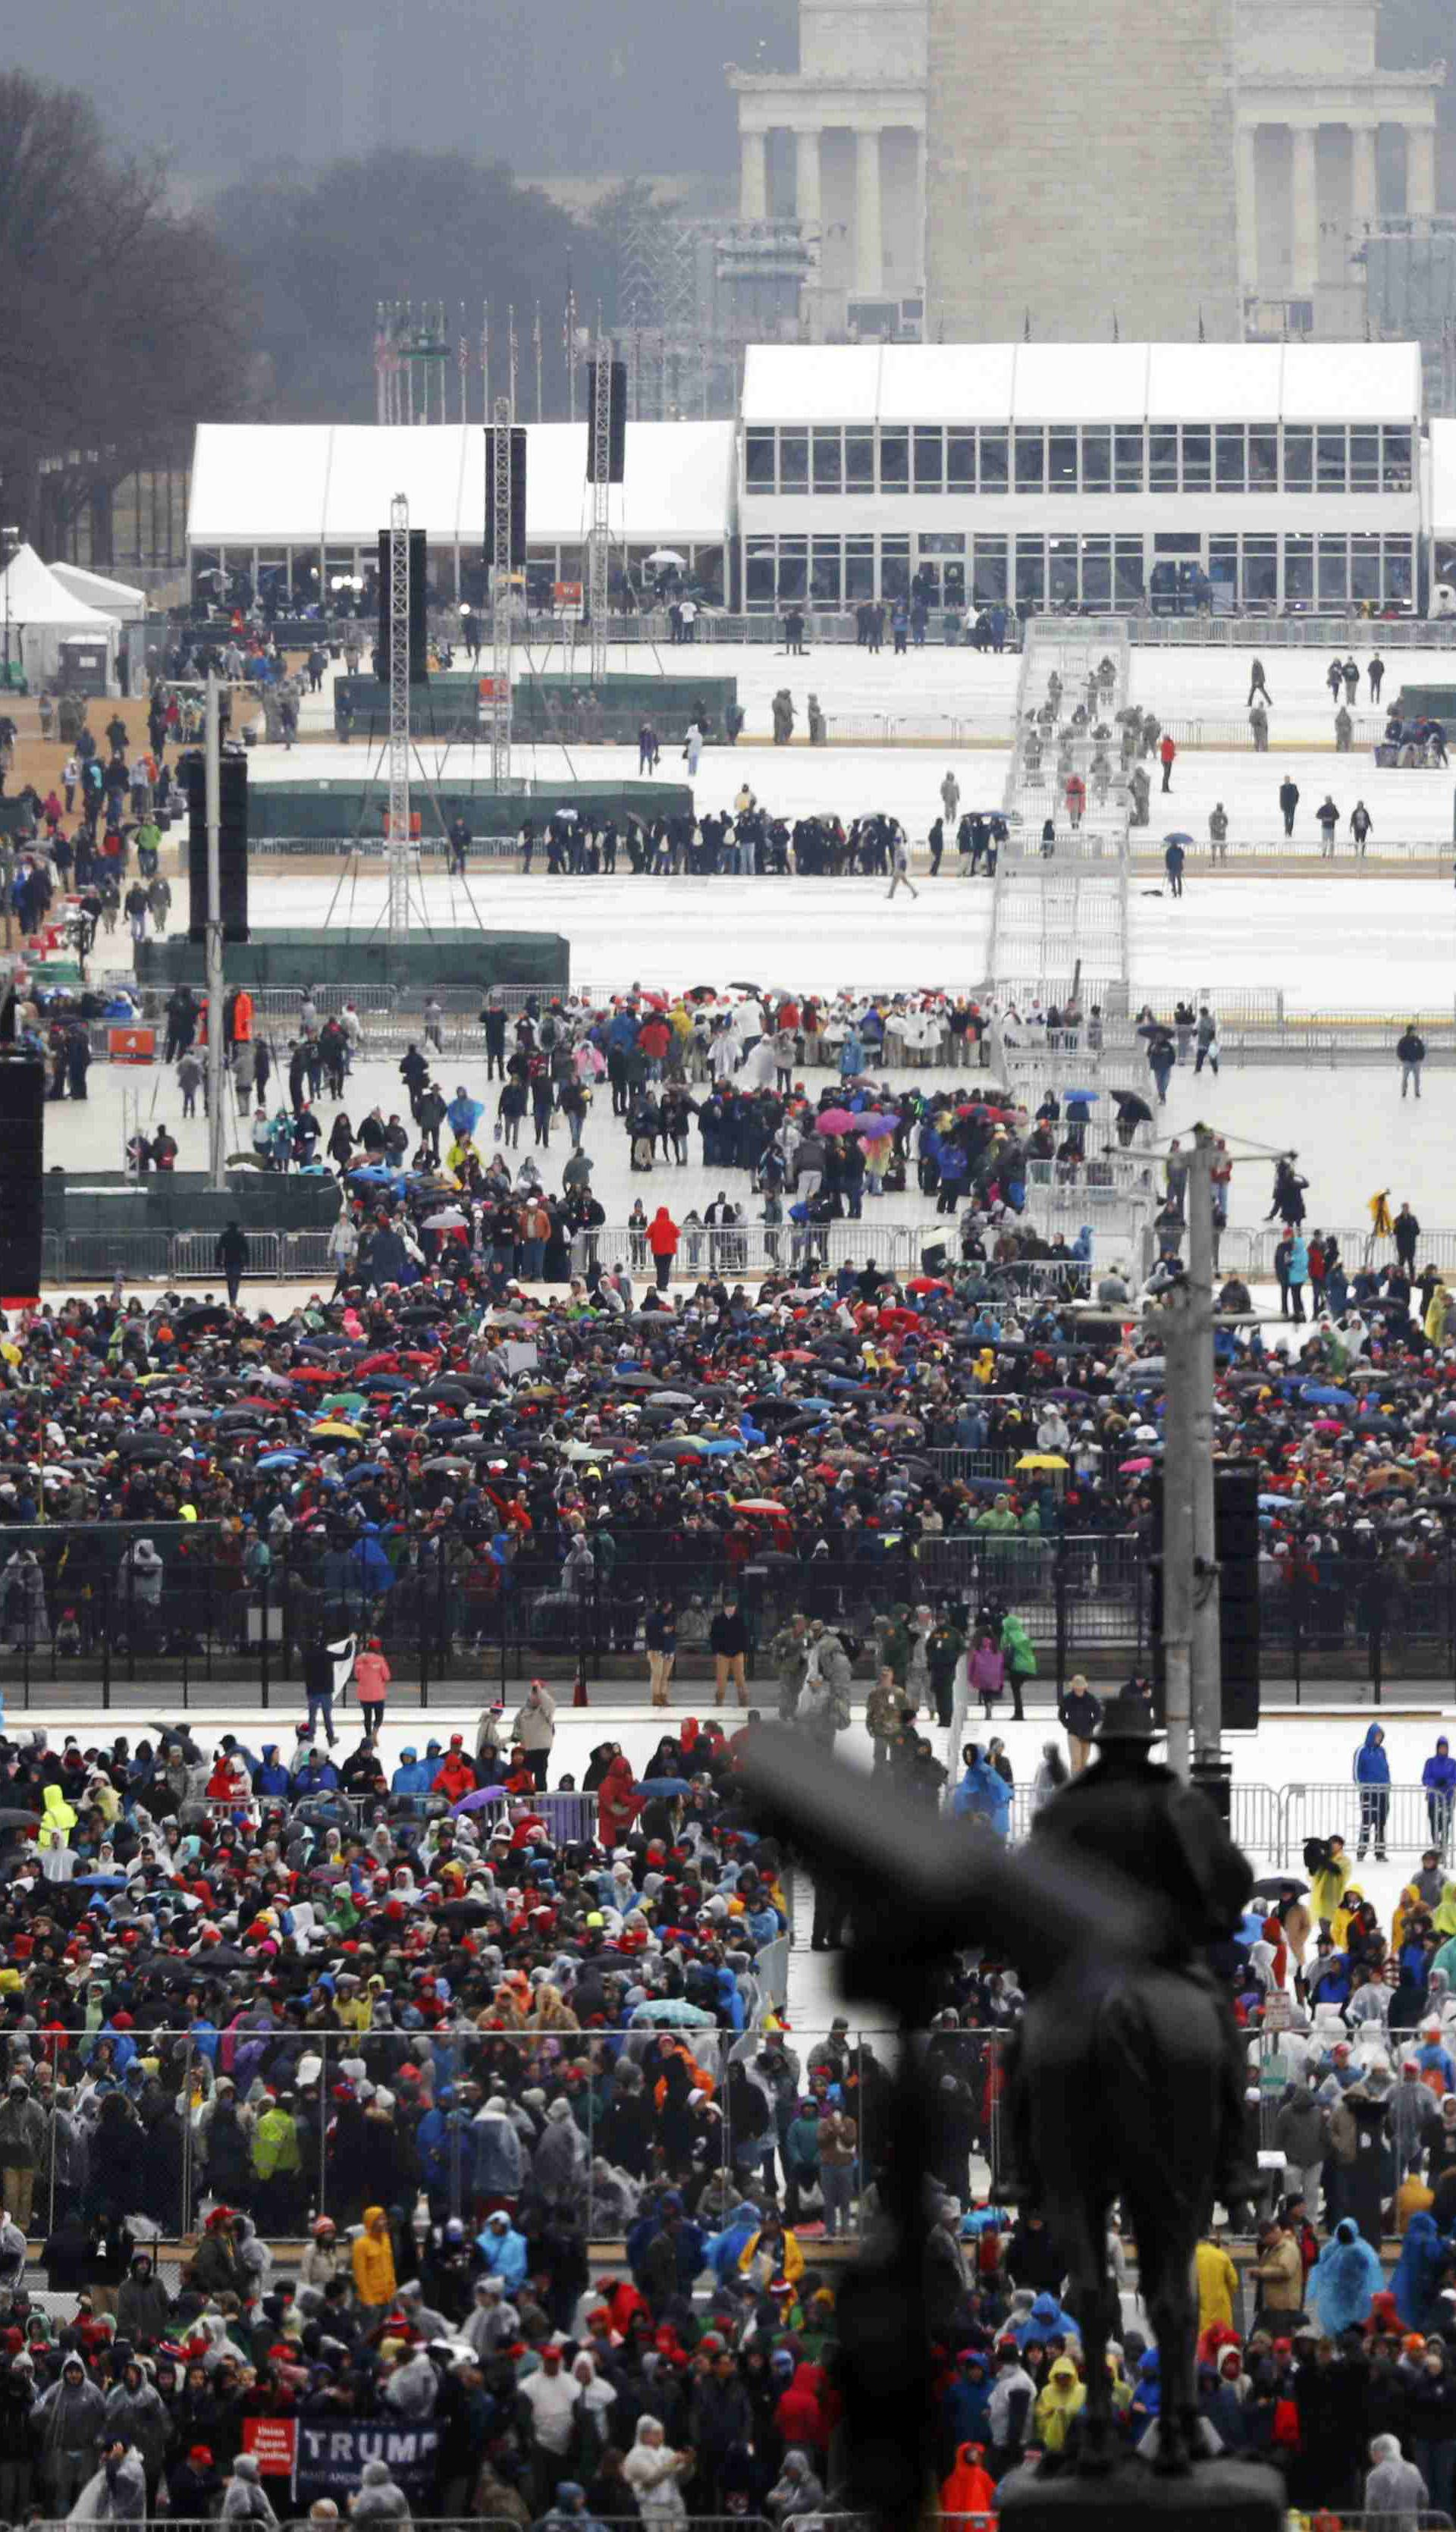 Spectators gather for the inauguration ceremonies swearing in Donald Trump as the 45th president of the United States on the West front of the U.S. Capitol in Washington